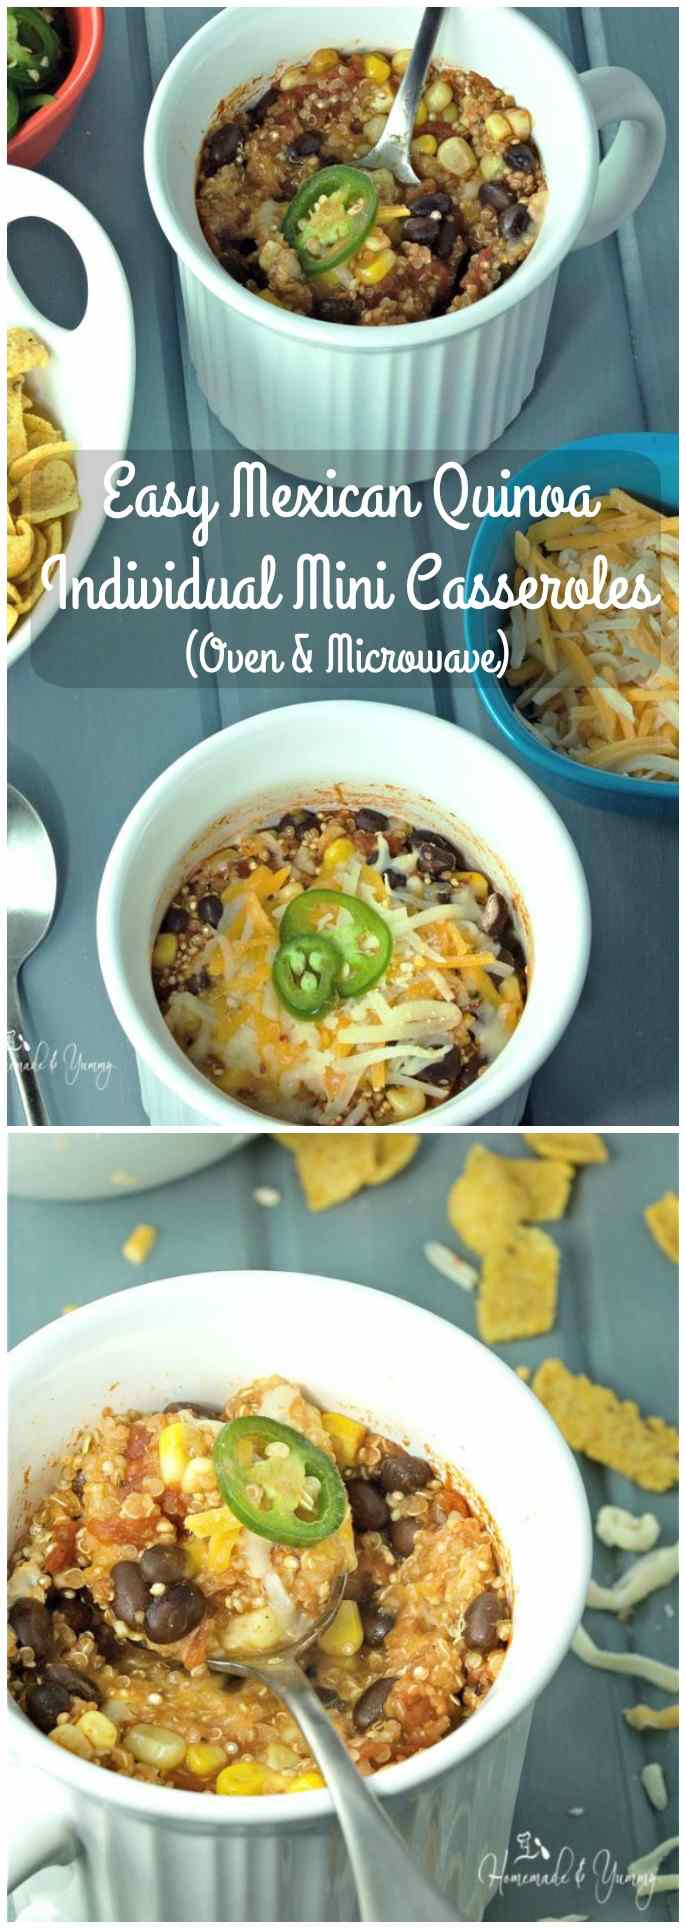 Easy Mexican Quinoa Individual Mini Casseroles long pin image.